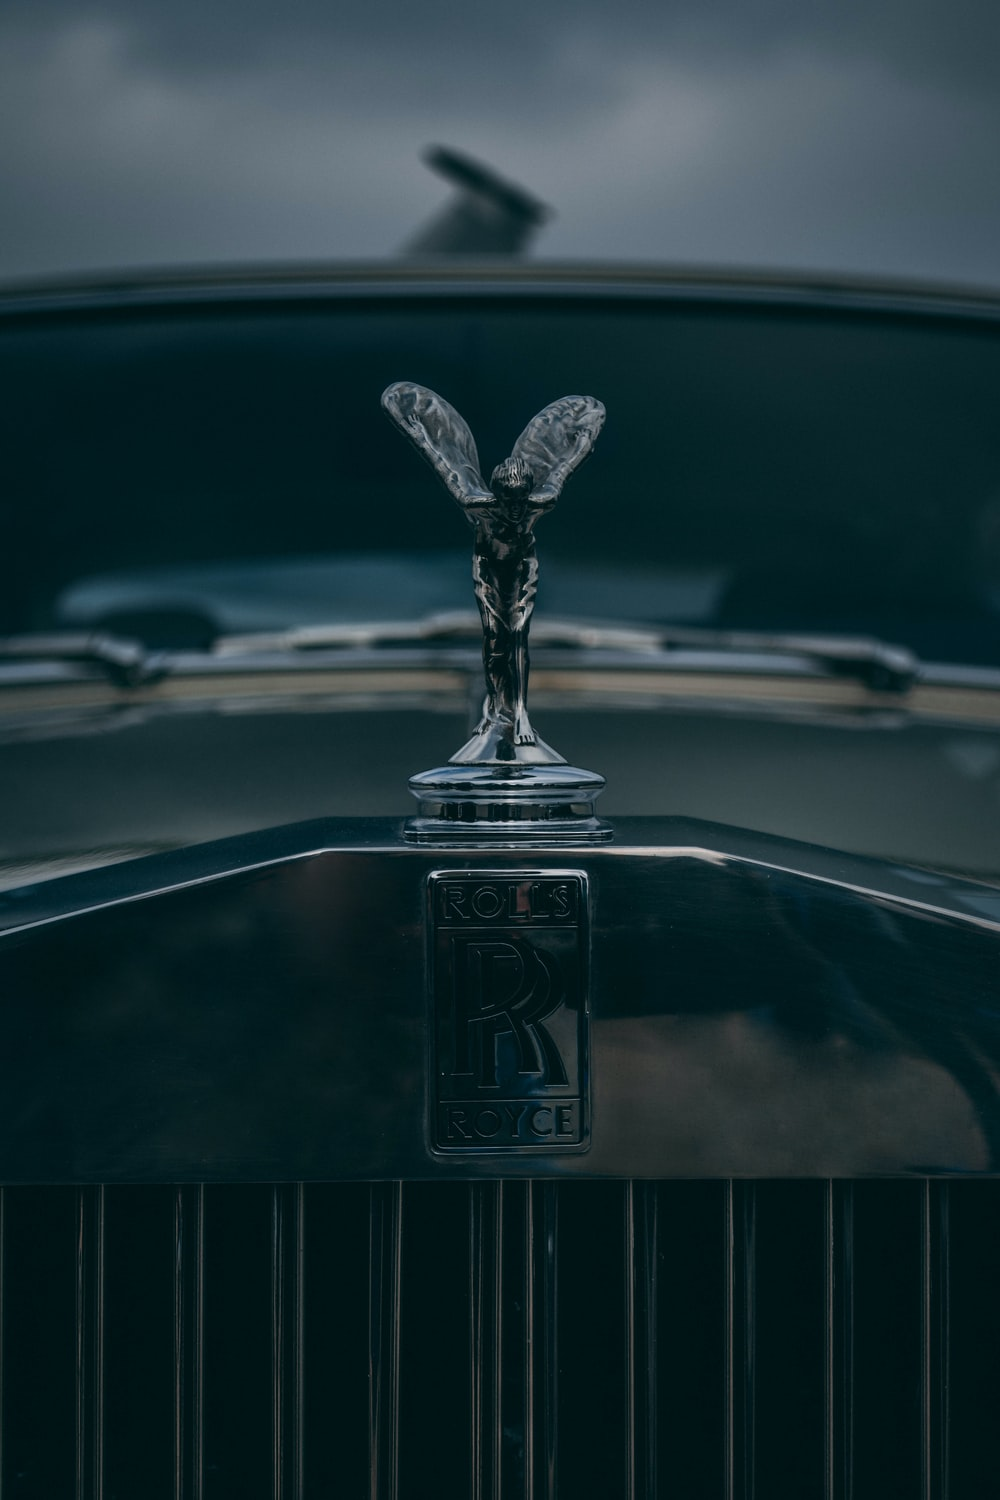 Car Hood Ornament Pictures Download Free Images On Unsplash